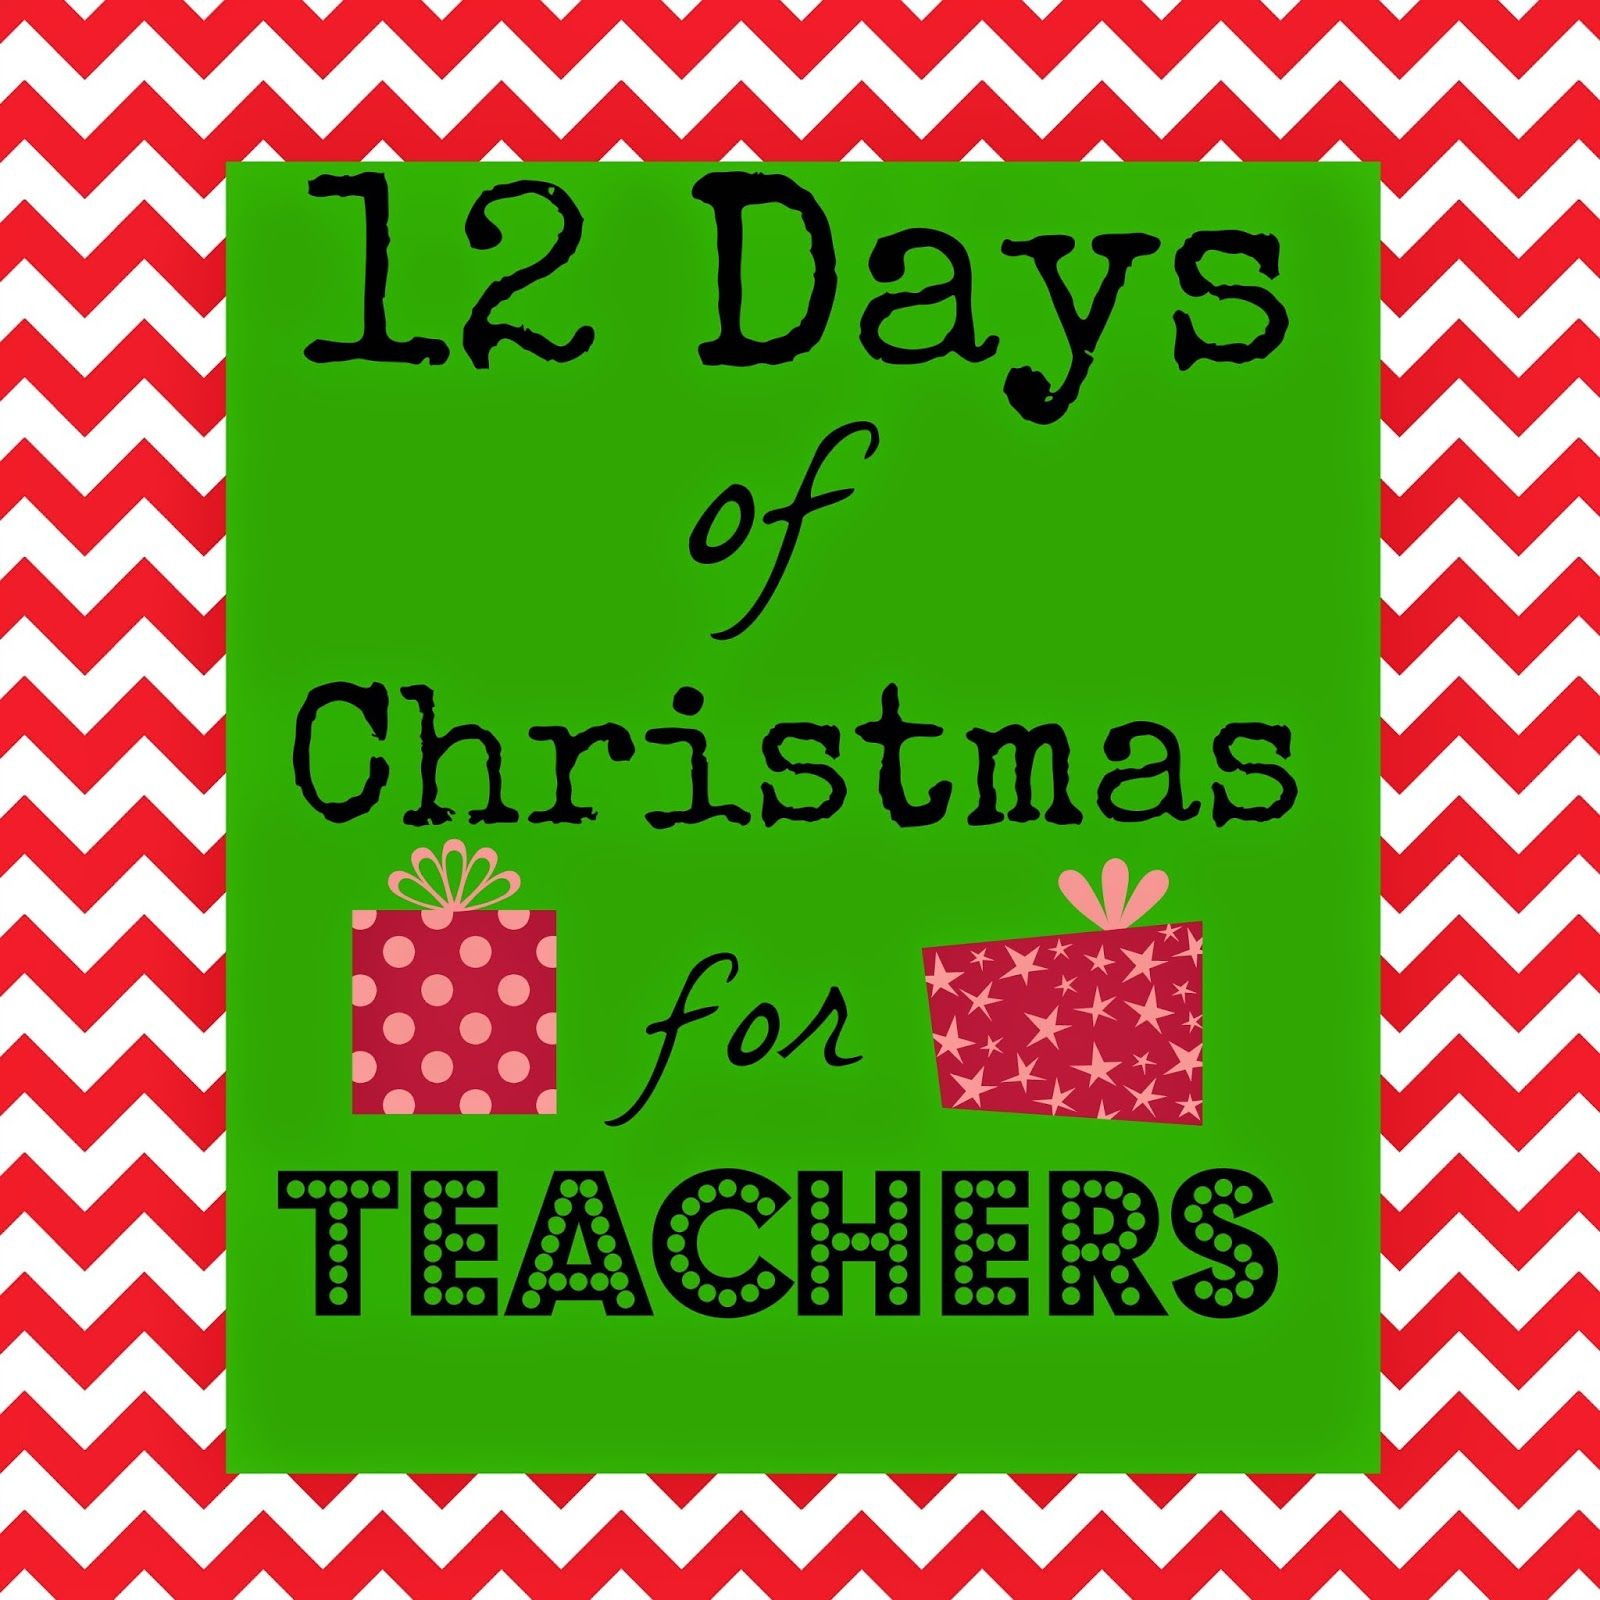 12 Days of Christmas for Teachers with FREE printable tags for EACH day. From Marci Coombs Blog